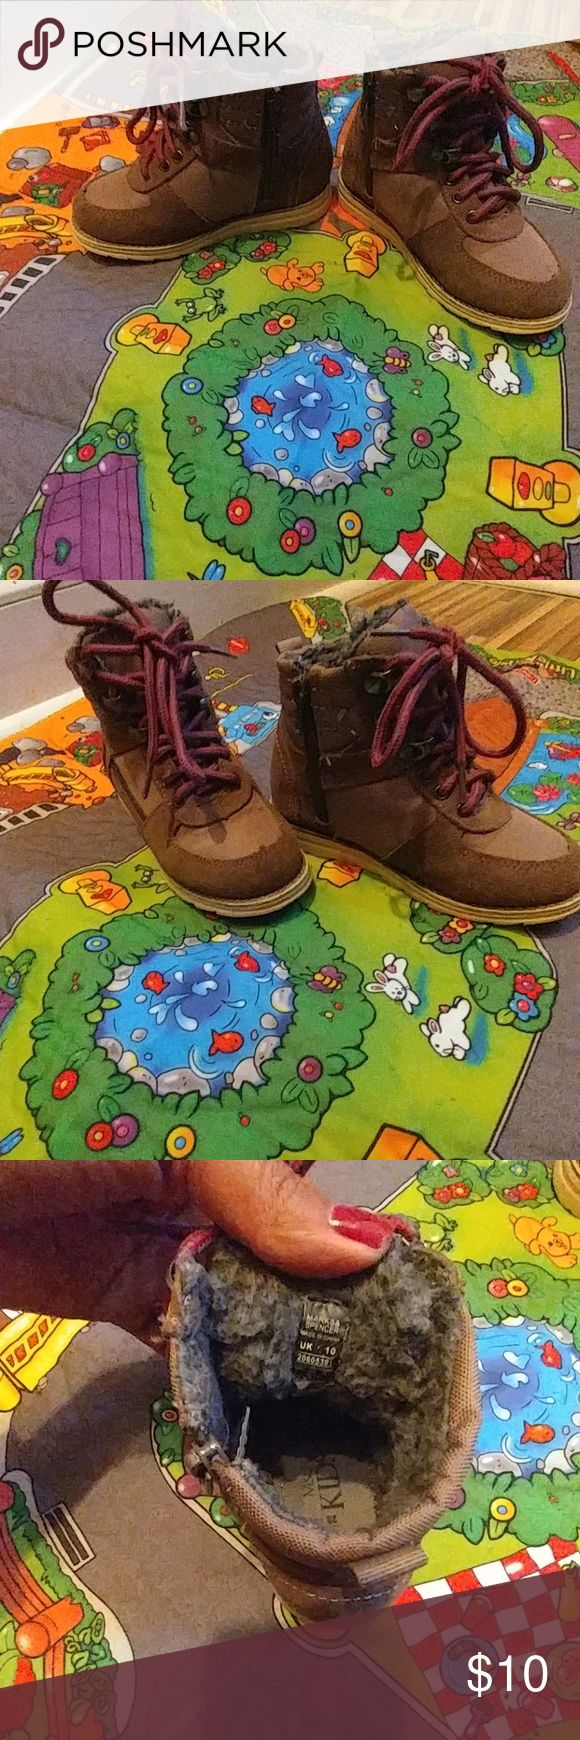 Marks & Spencer boots Boys UK 10 brown boots (great condition) Shoes Boots